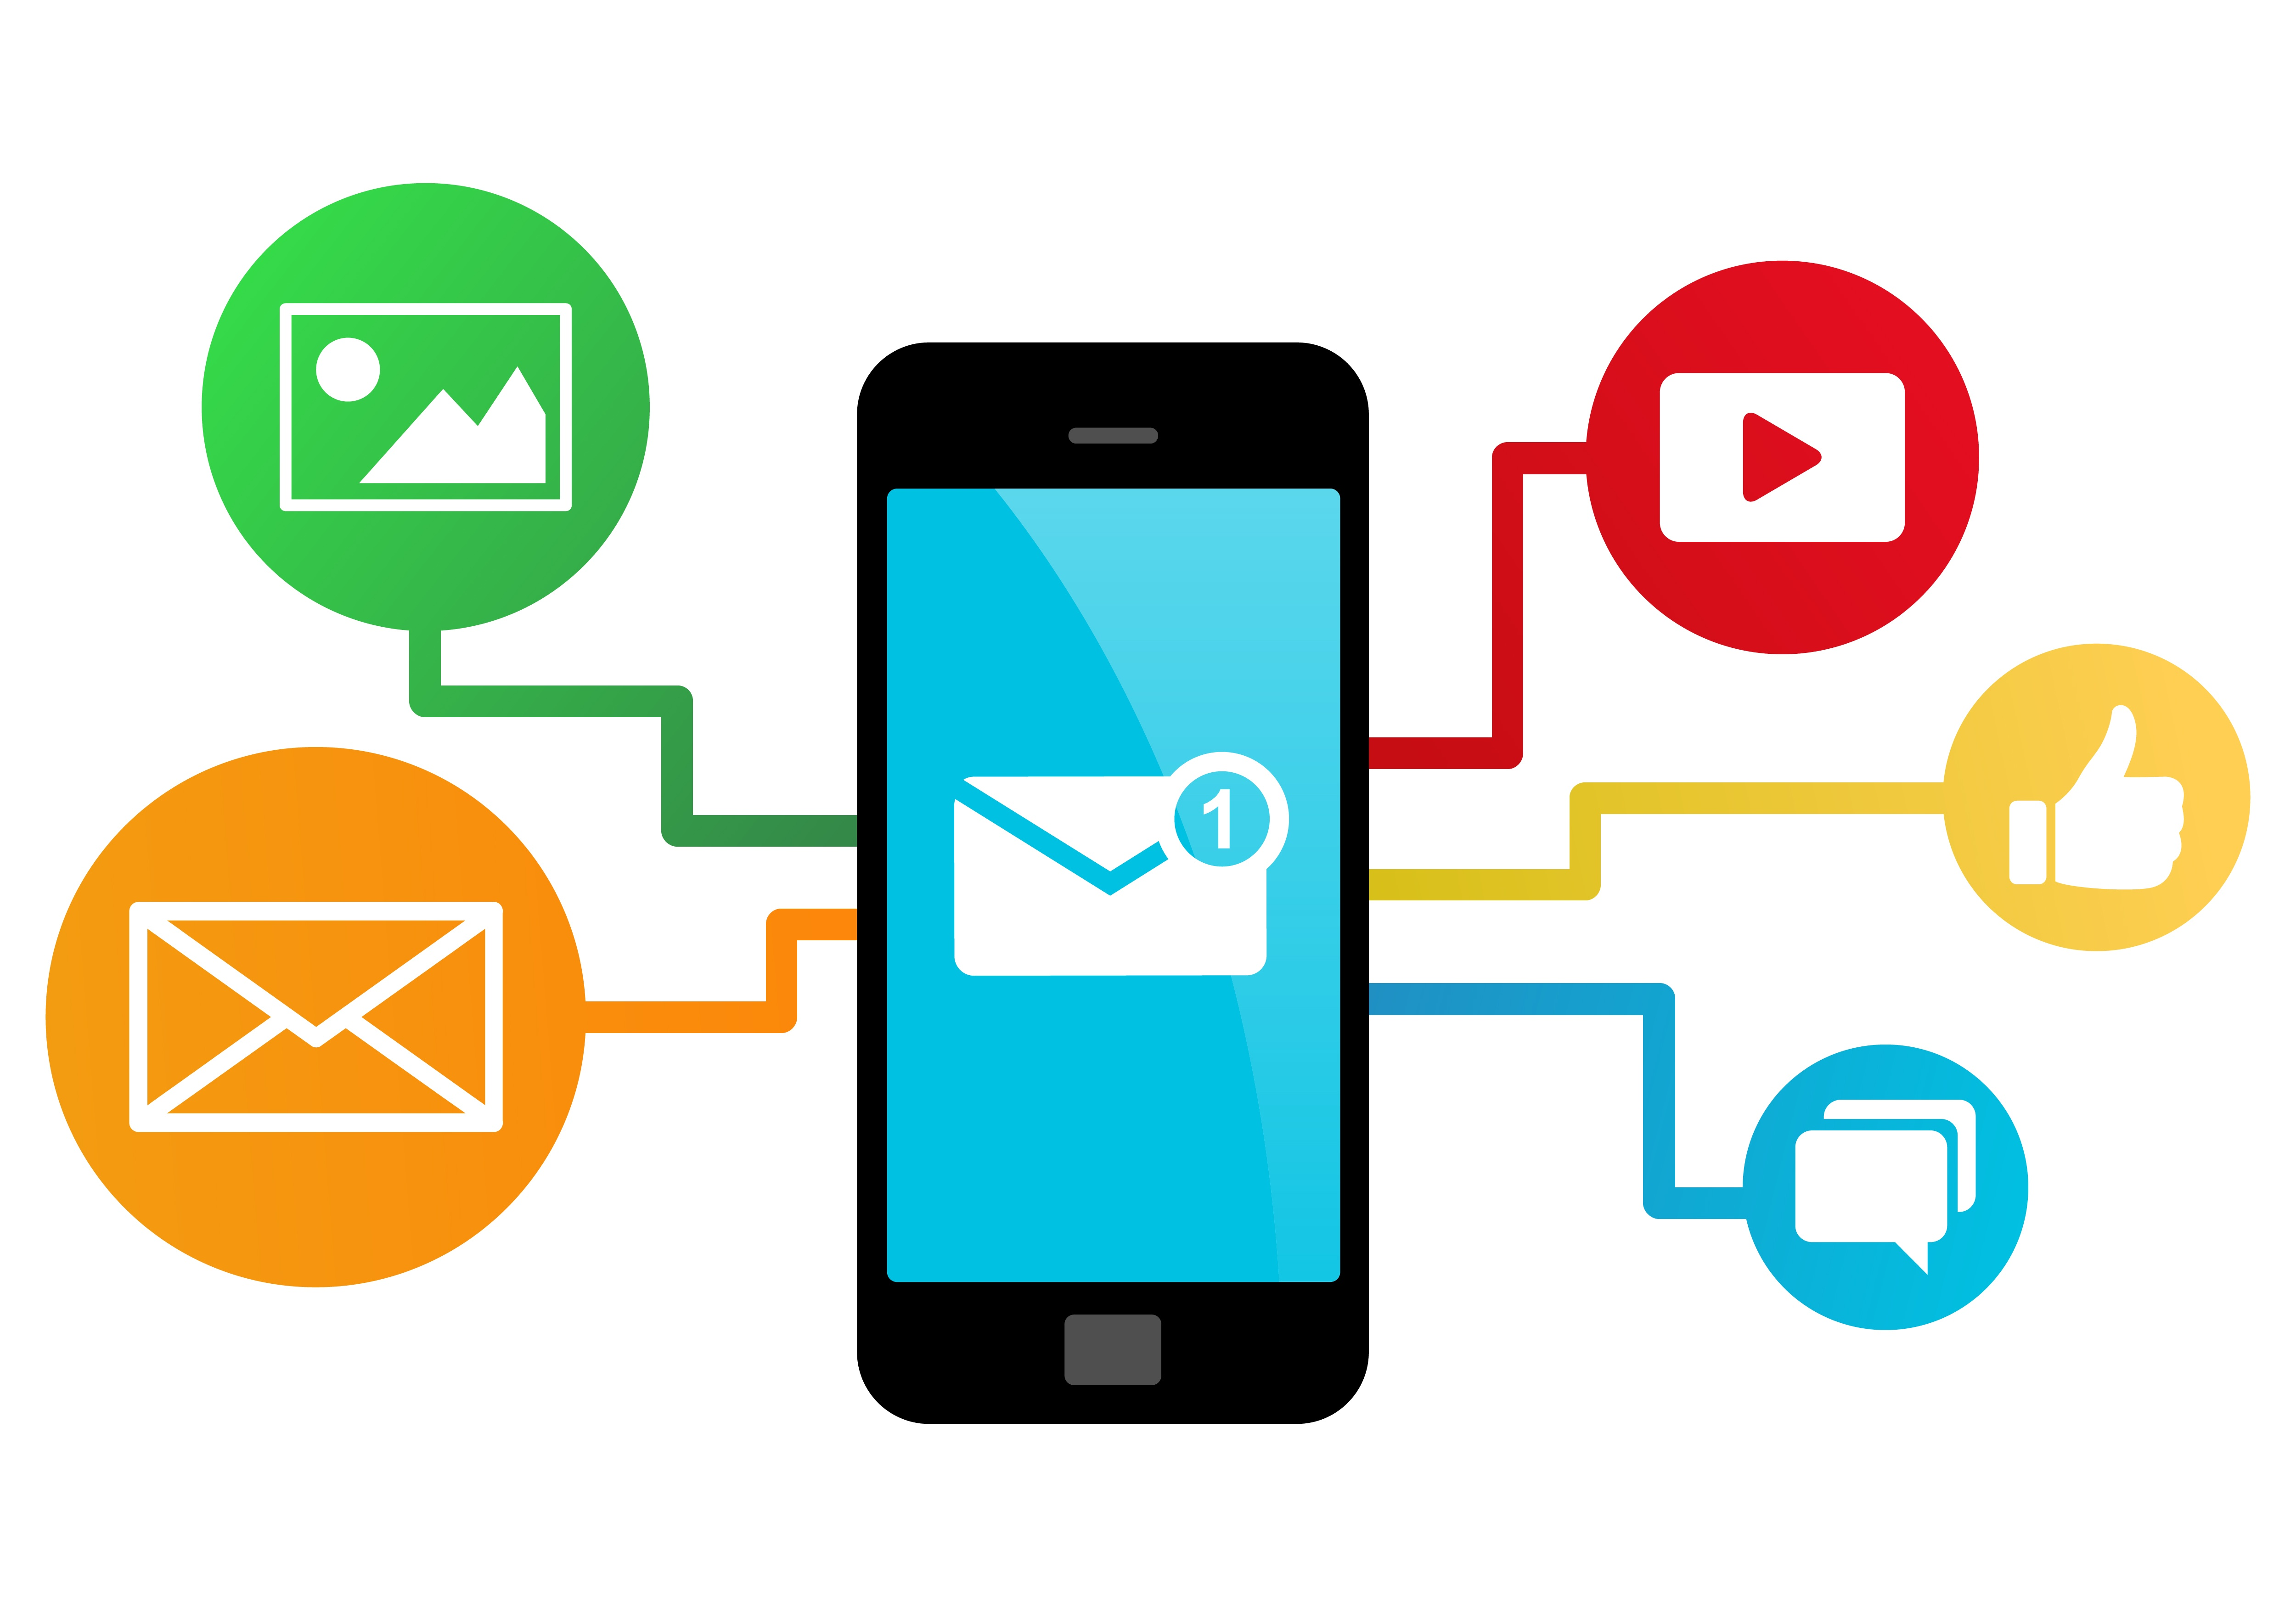 4 common mistakes legal marketers make when optimising for mobile conversions